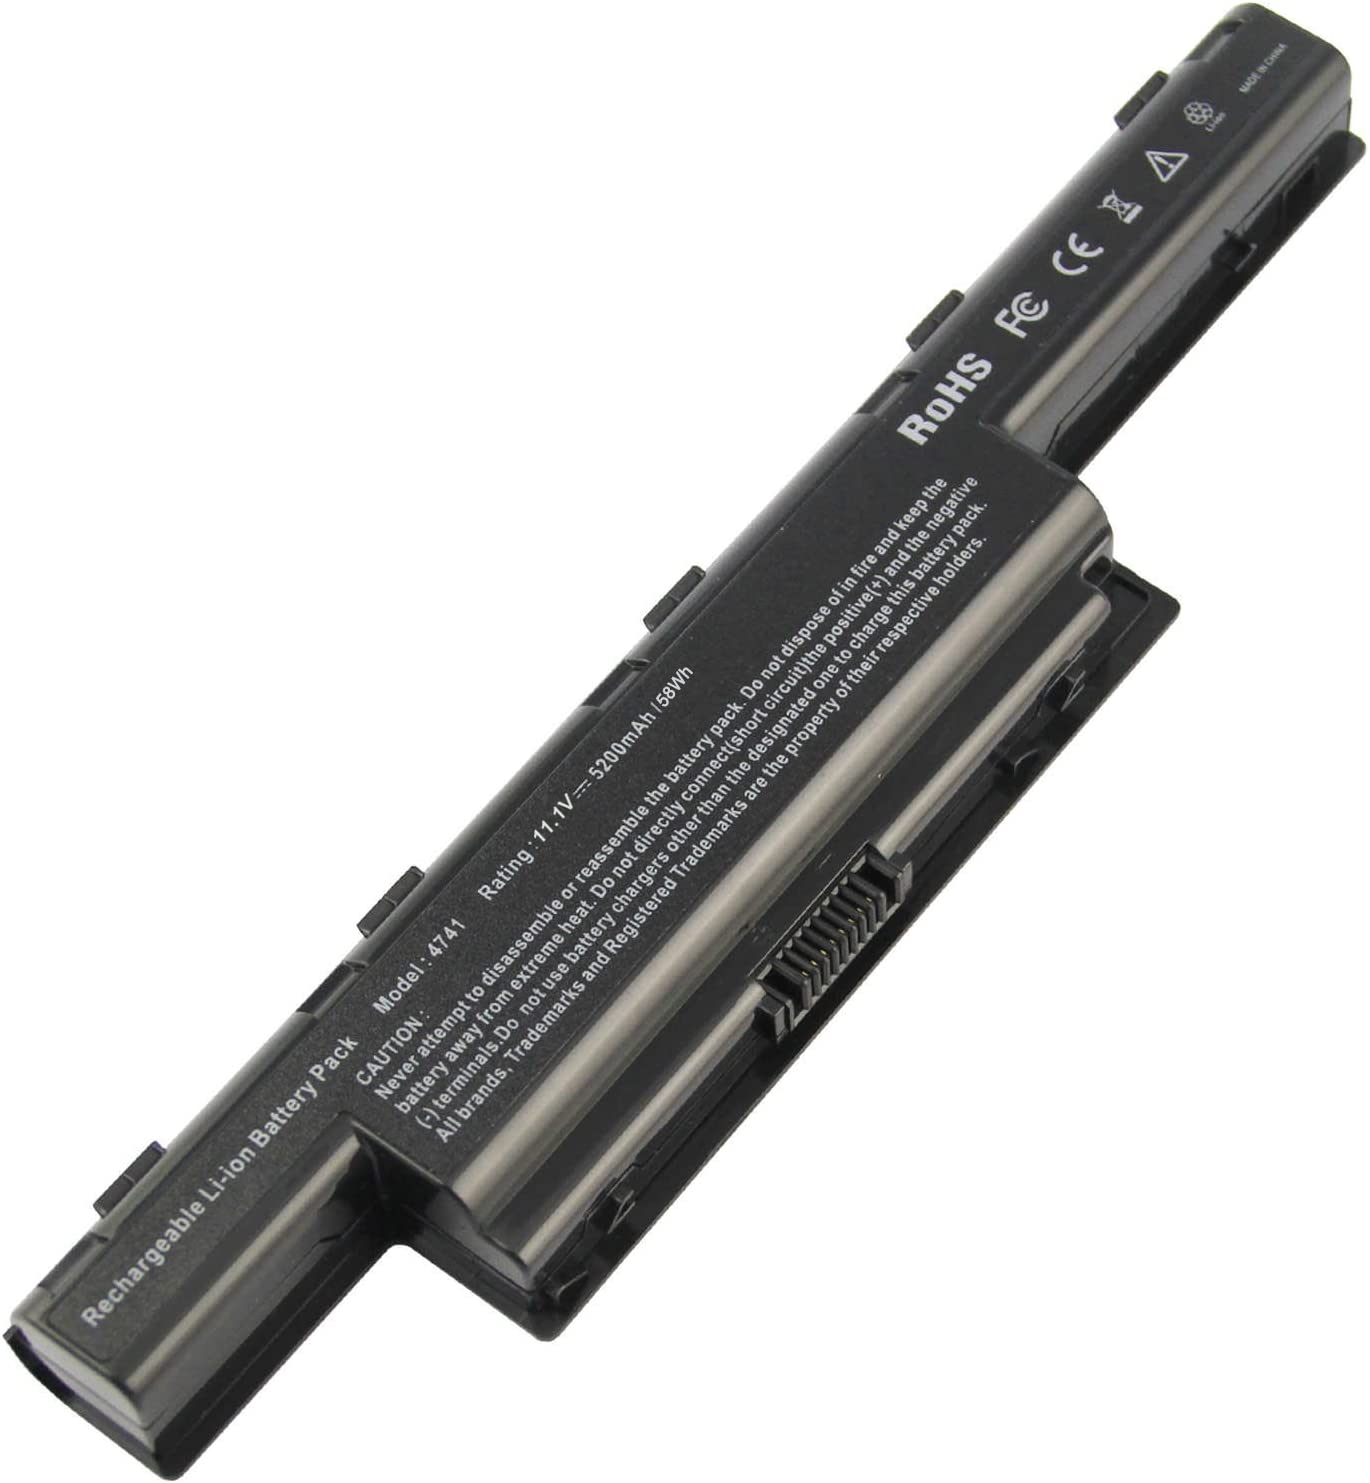 Fancy Buying Laptop Battery for ACER Aspire 4333, 4625, 4733Z, 4743G, 5250, 5252, 5333, 5336, 5736Z, 7251, TravelMate 4370, 5335, 5340, 5542, 7340; P/N 31CR19/65-2, 31CR19/652, 31CR19/66-2, AS10D31